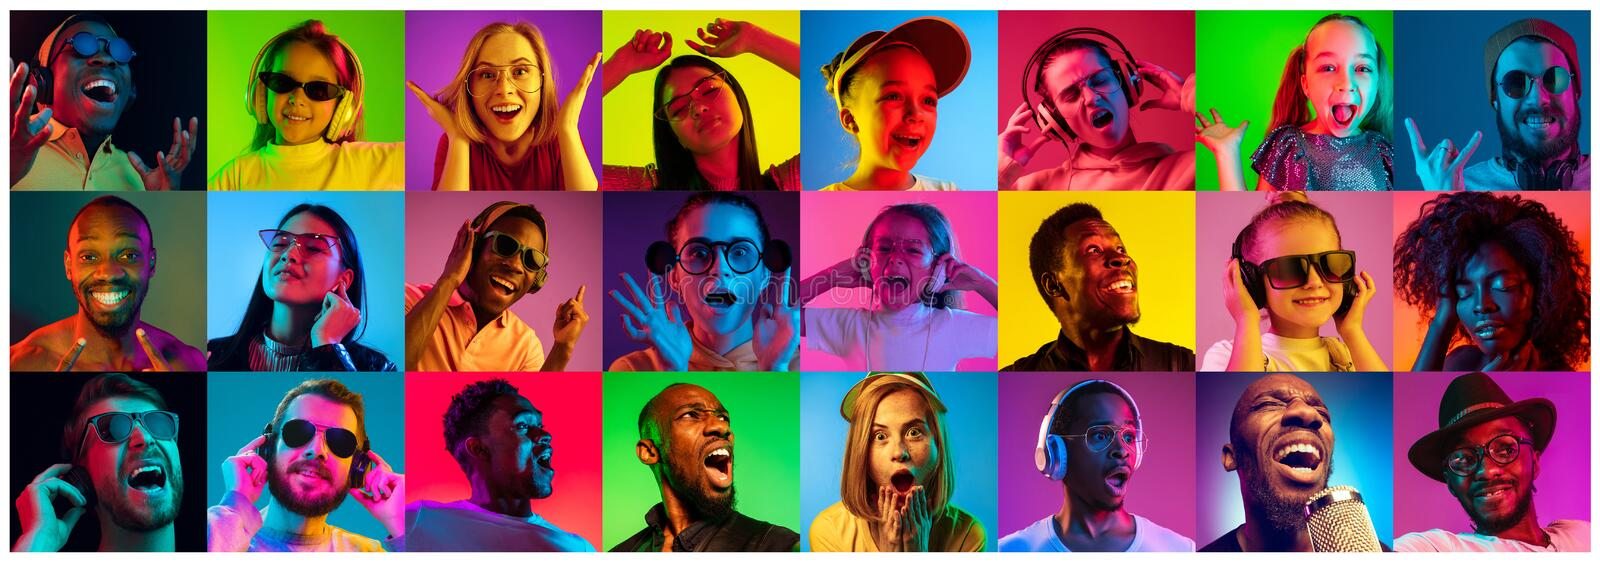 Handsome men and women looking suprised and happy. Beautiful people portrait isolated on bright neon light backgroud. Young, smiling, surprised, screaming. Human royalty free stock image